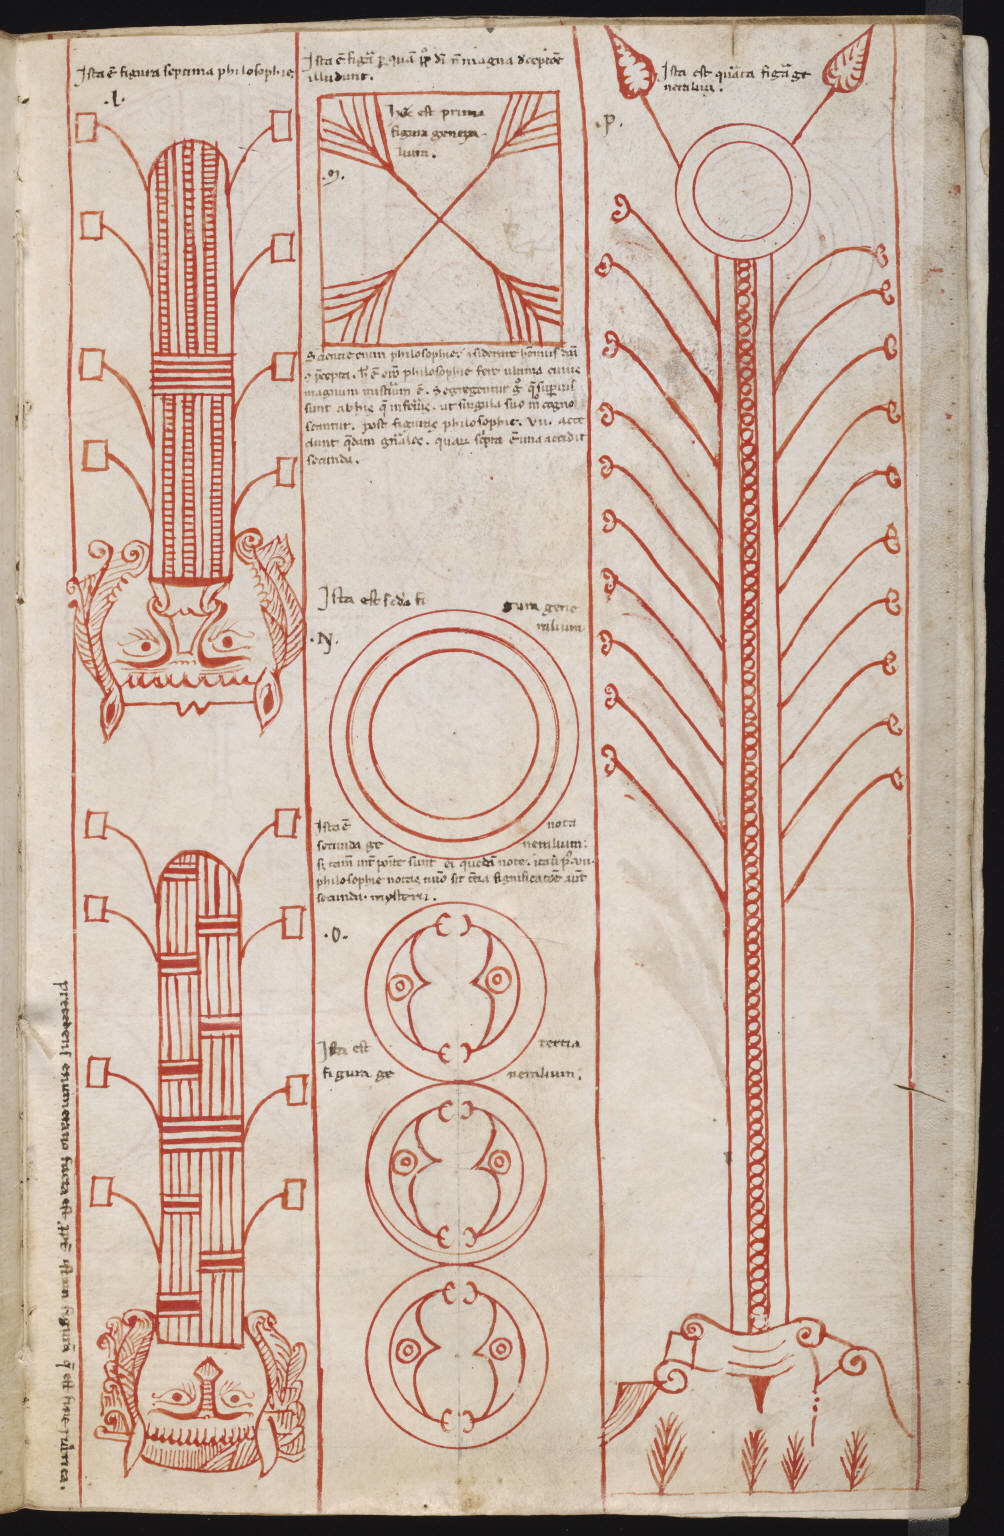 Alchemical Emblems  Occult Diagrams  And Memory Arts  Ars